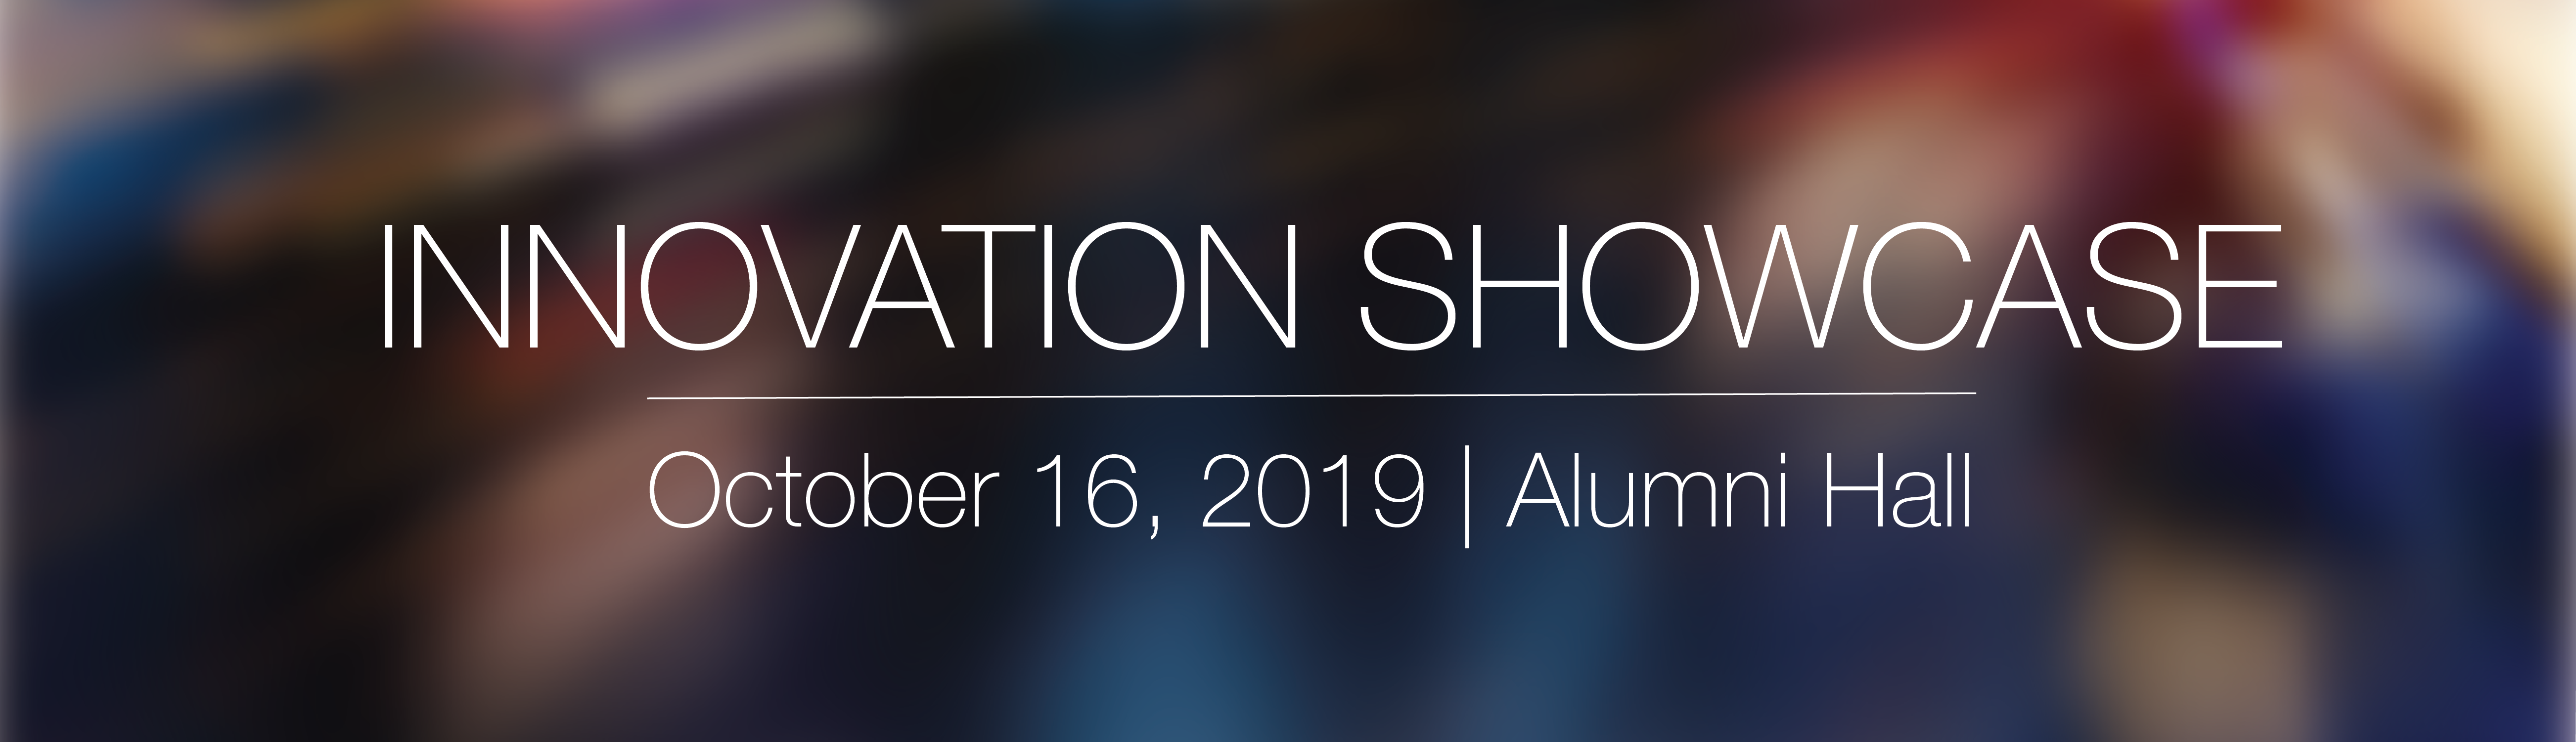 Innovation Showcase 2019-1